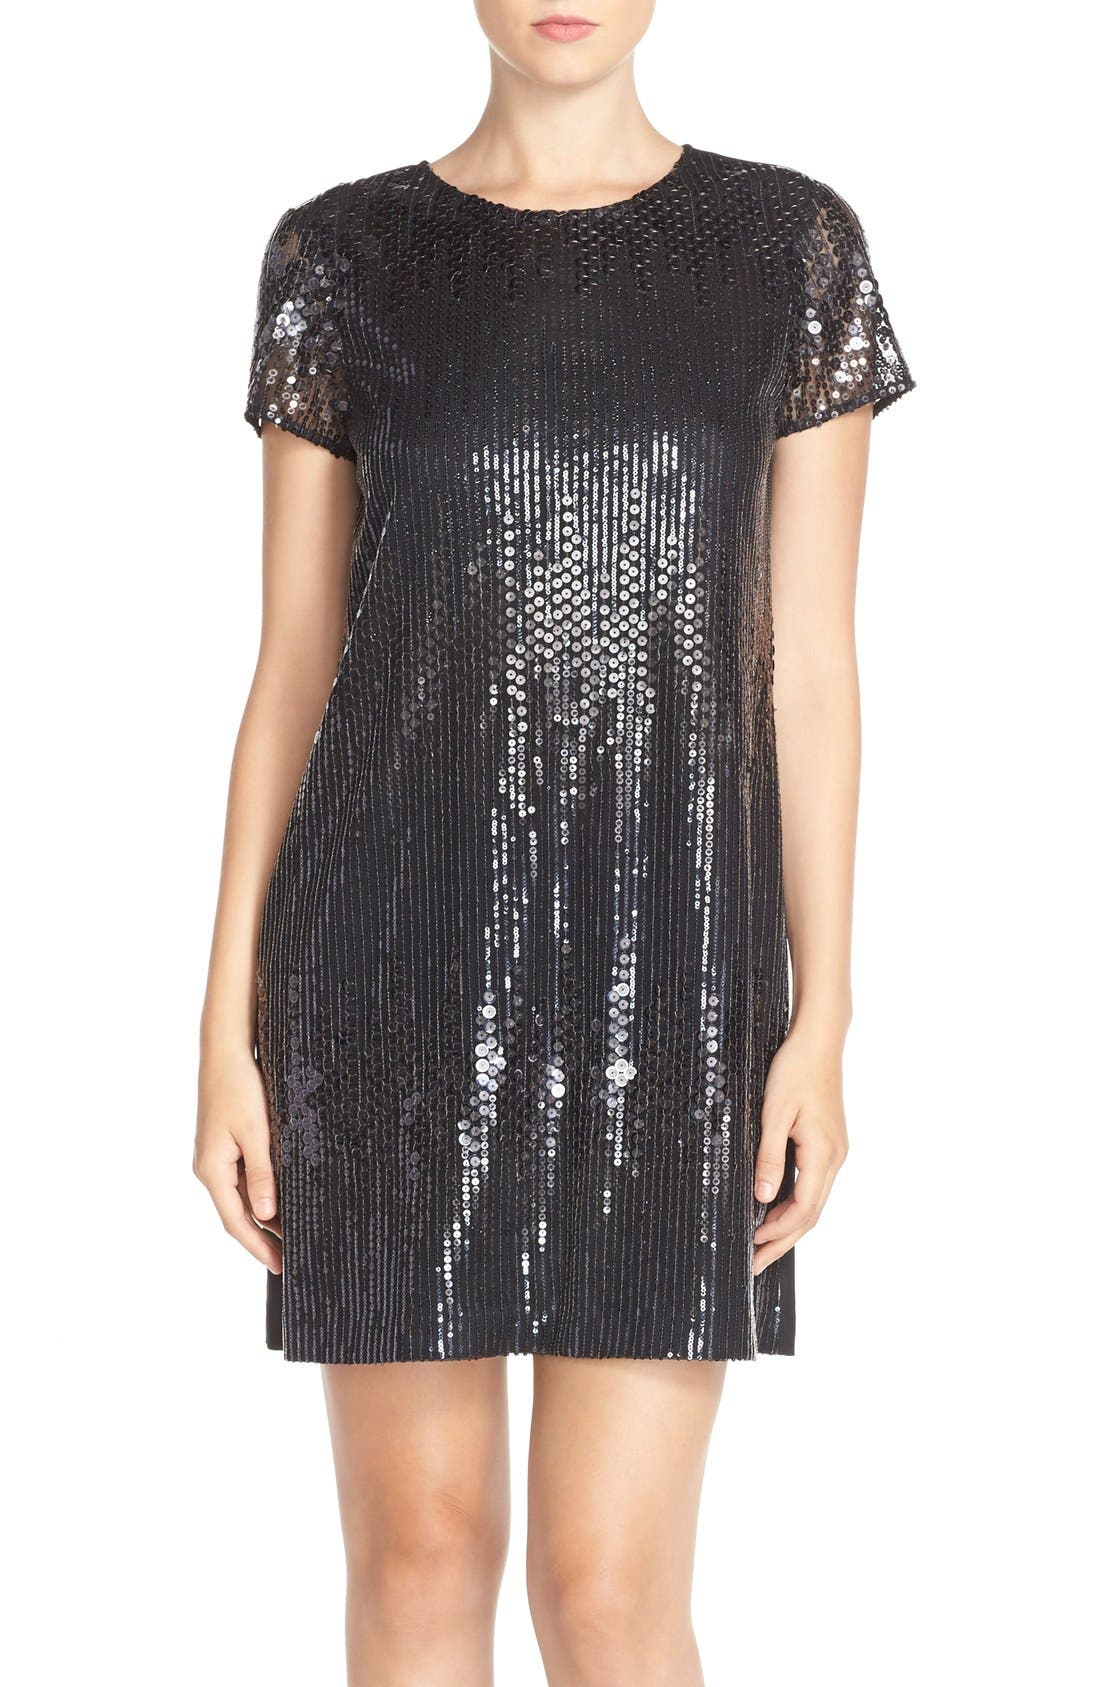 Alternate Image 1 Selected - CeCe by Cynthia Steffe 'Michele' Sequin Woven Shift Dress